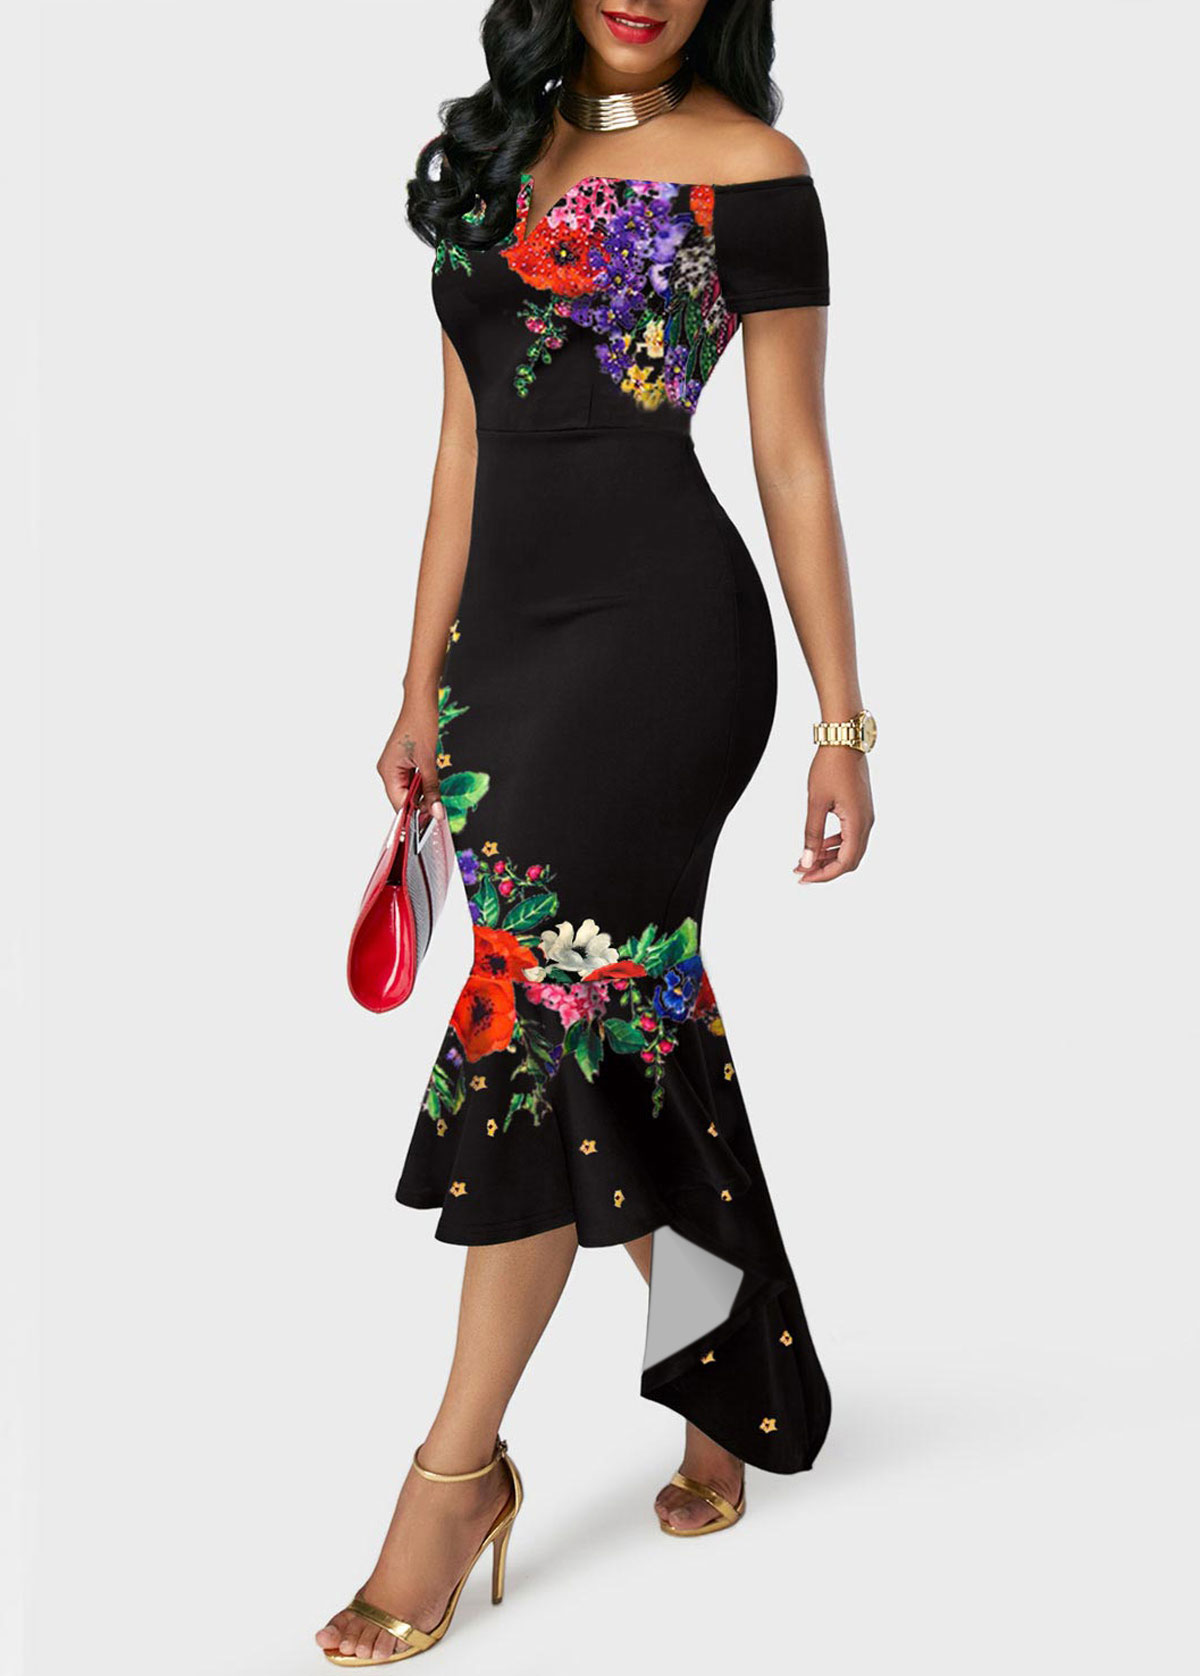 Floral Print Off the Shoulder Black Mermaid Dress